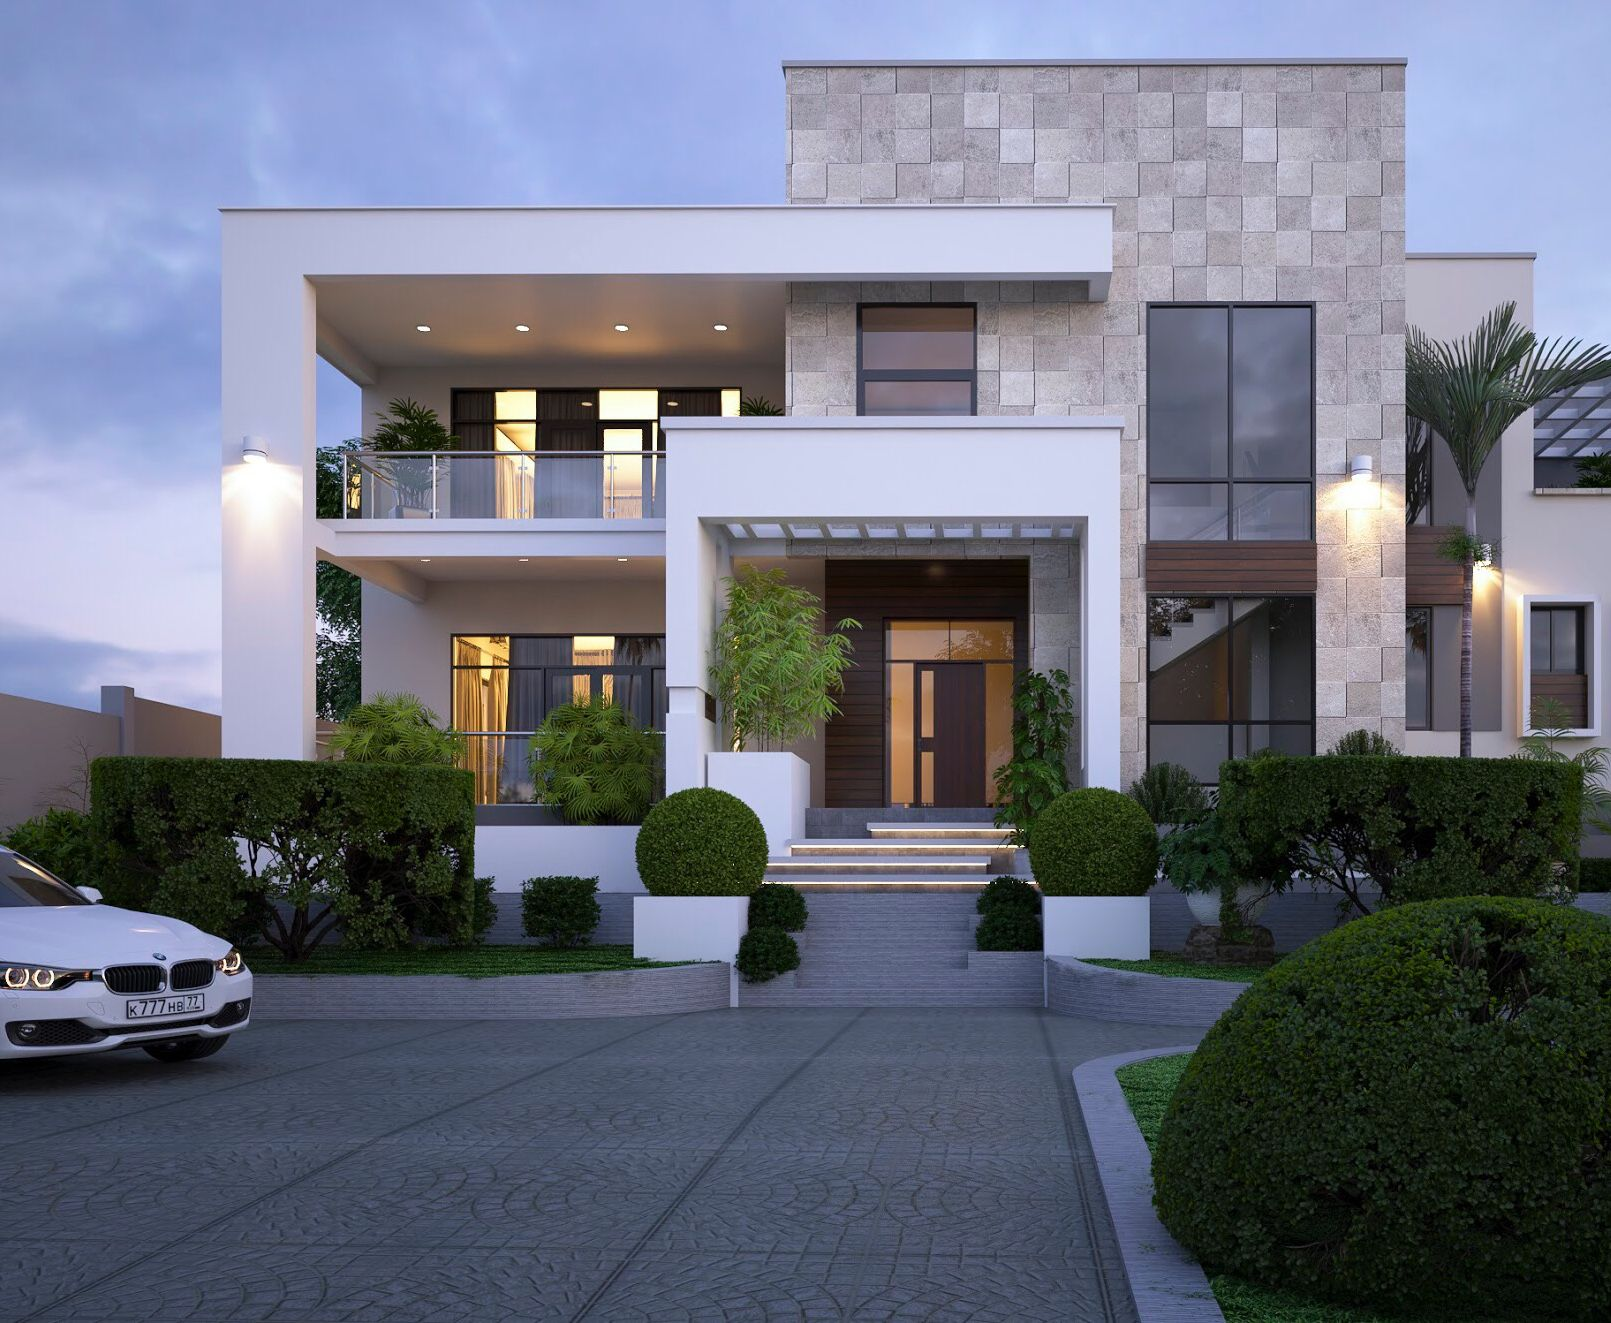 Home By Egmdesigns Flat Roof House Designs Flat Roof House Architecture House